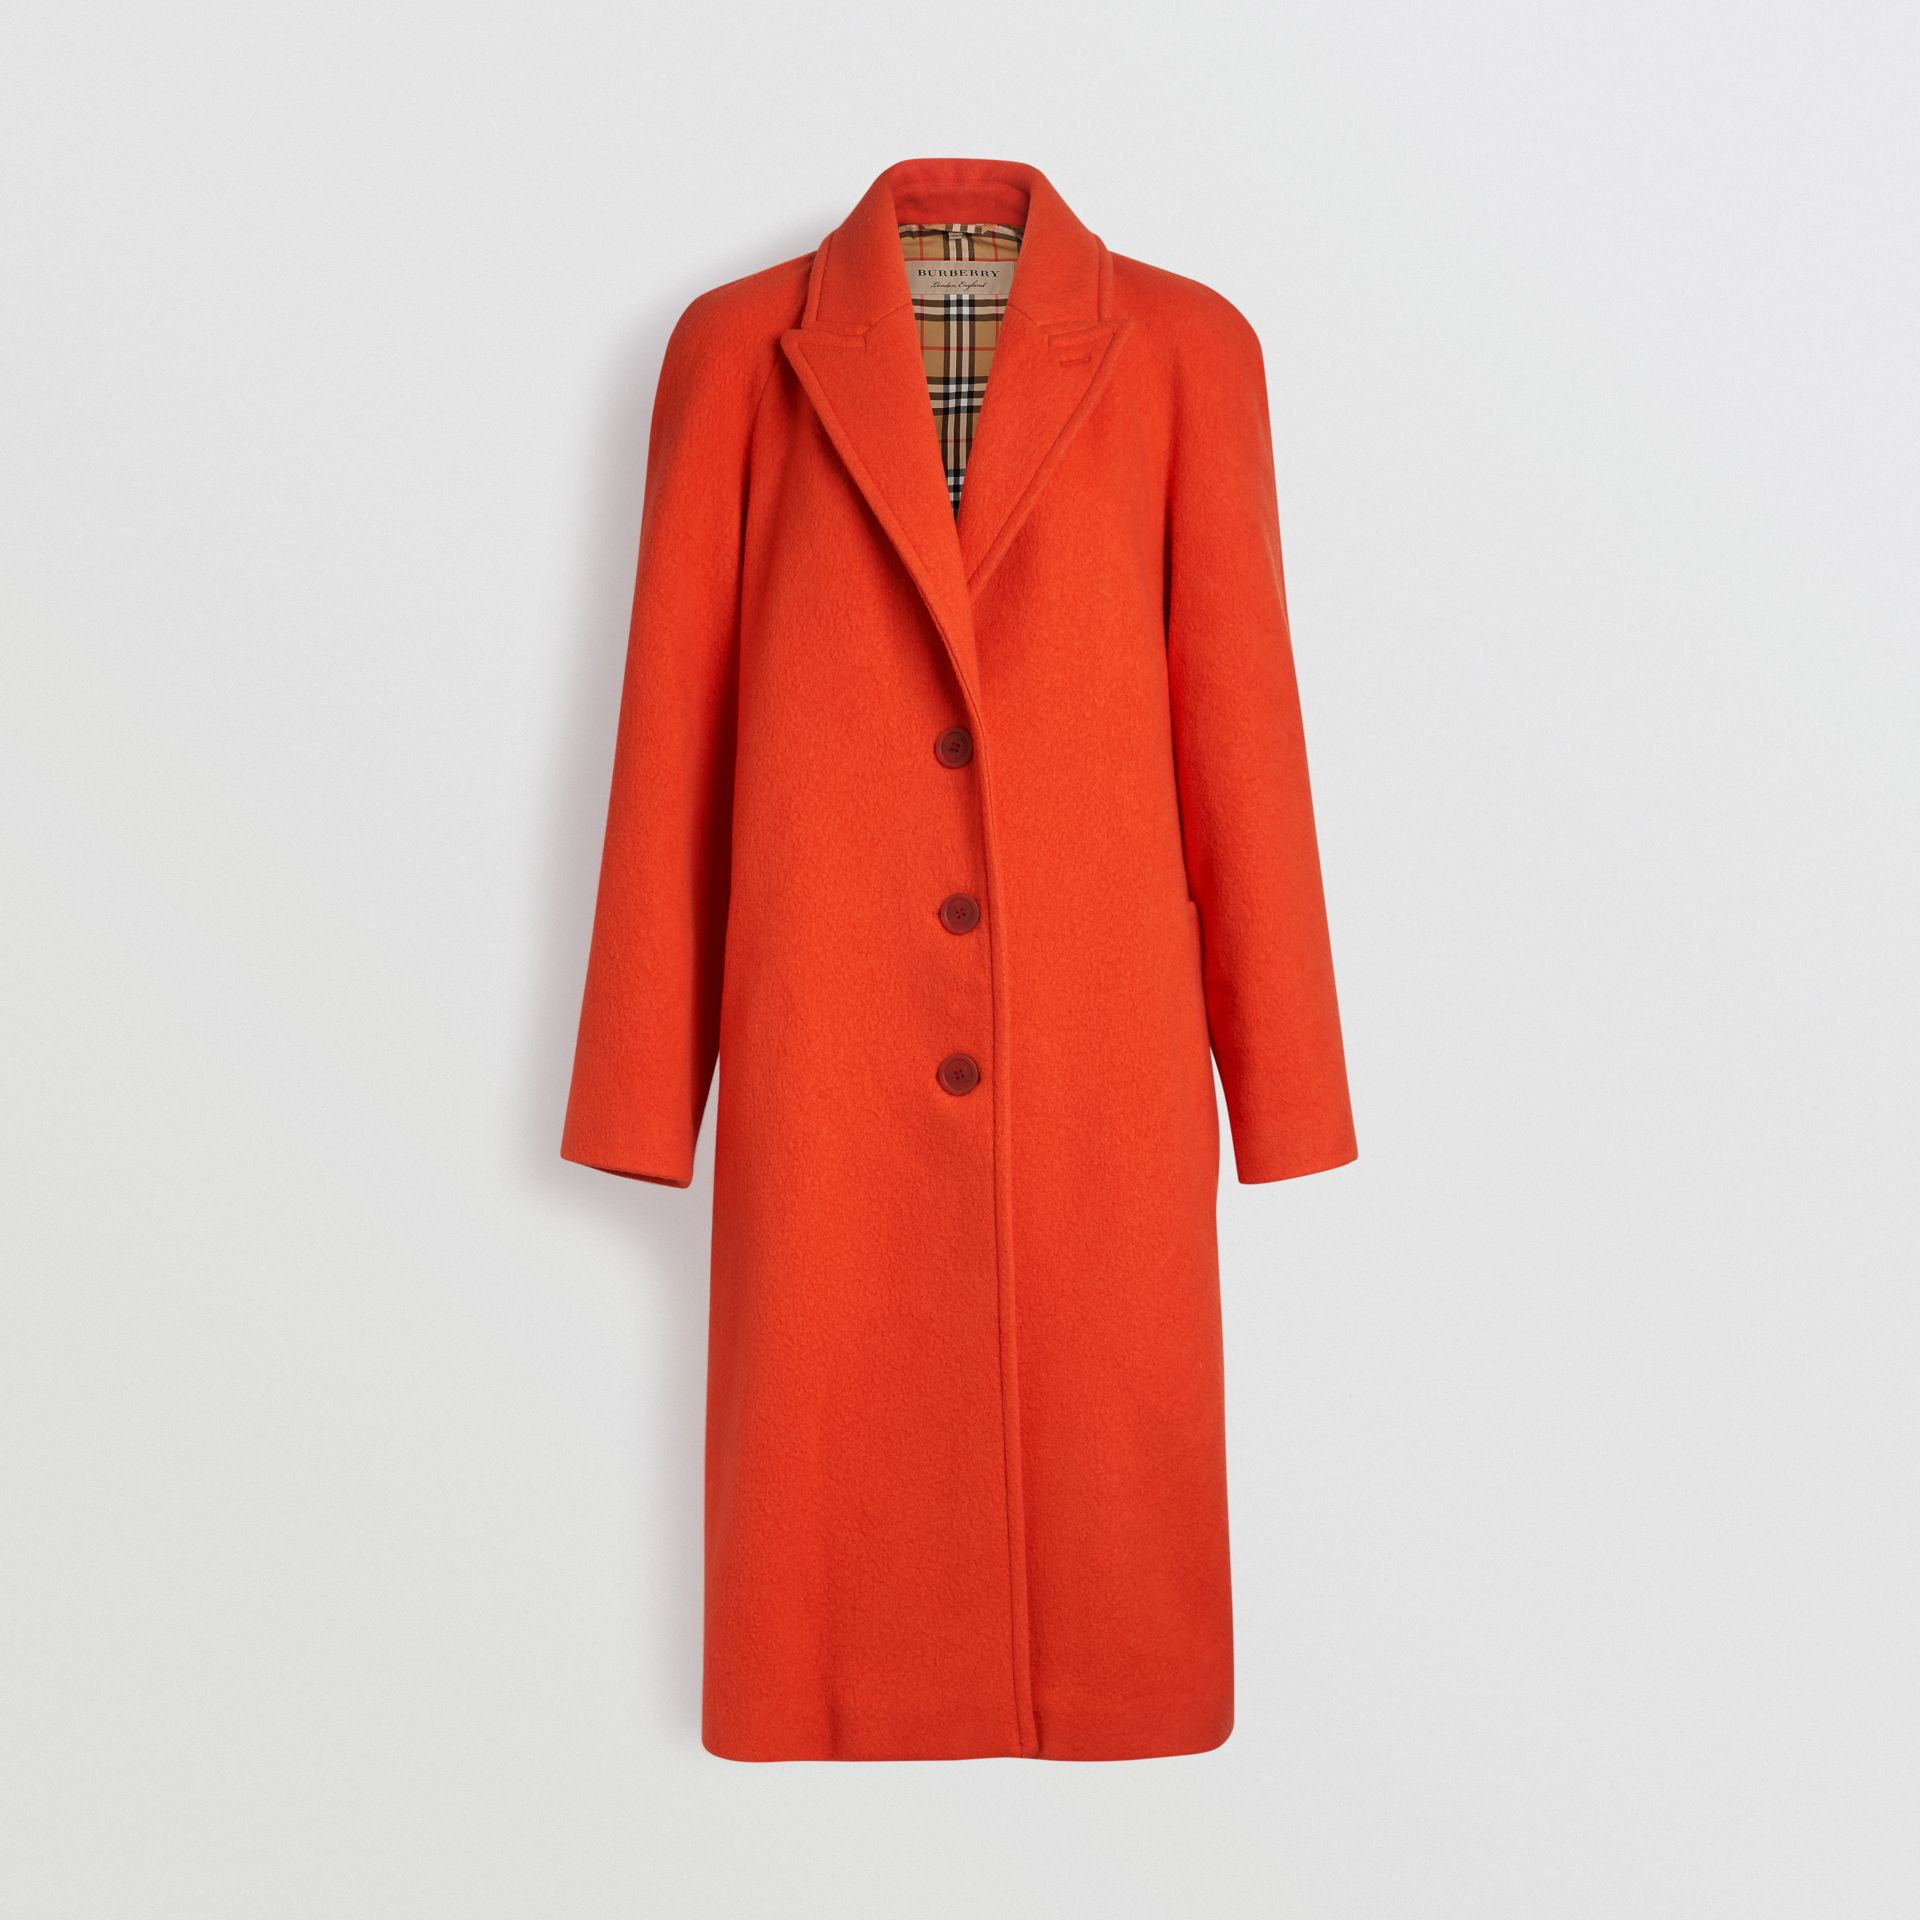 Wool Blend Tailored Coat in Bright Red - Women | Burberry - gallery image 3